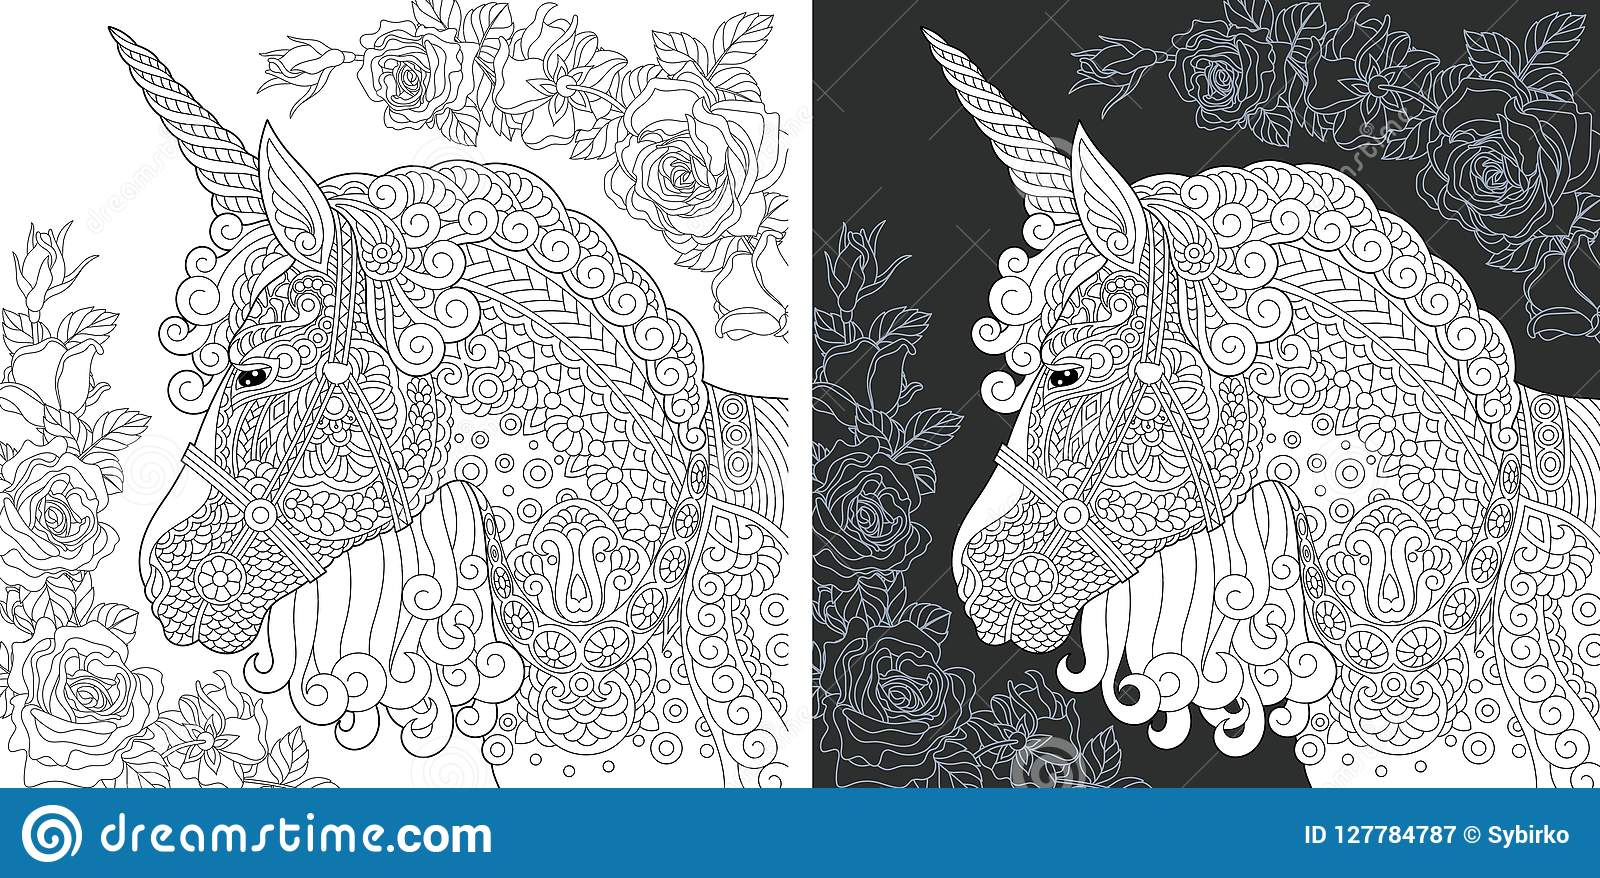 Unicorn Coloring Page Stock Vector Illustration Of Chalk 127784787